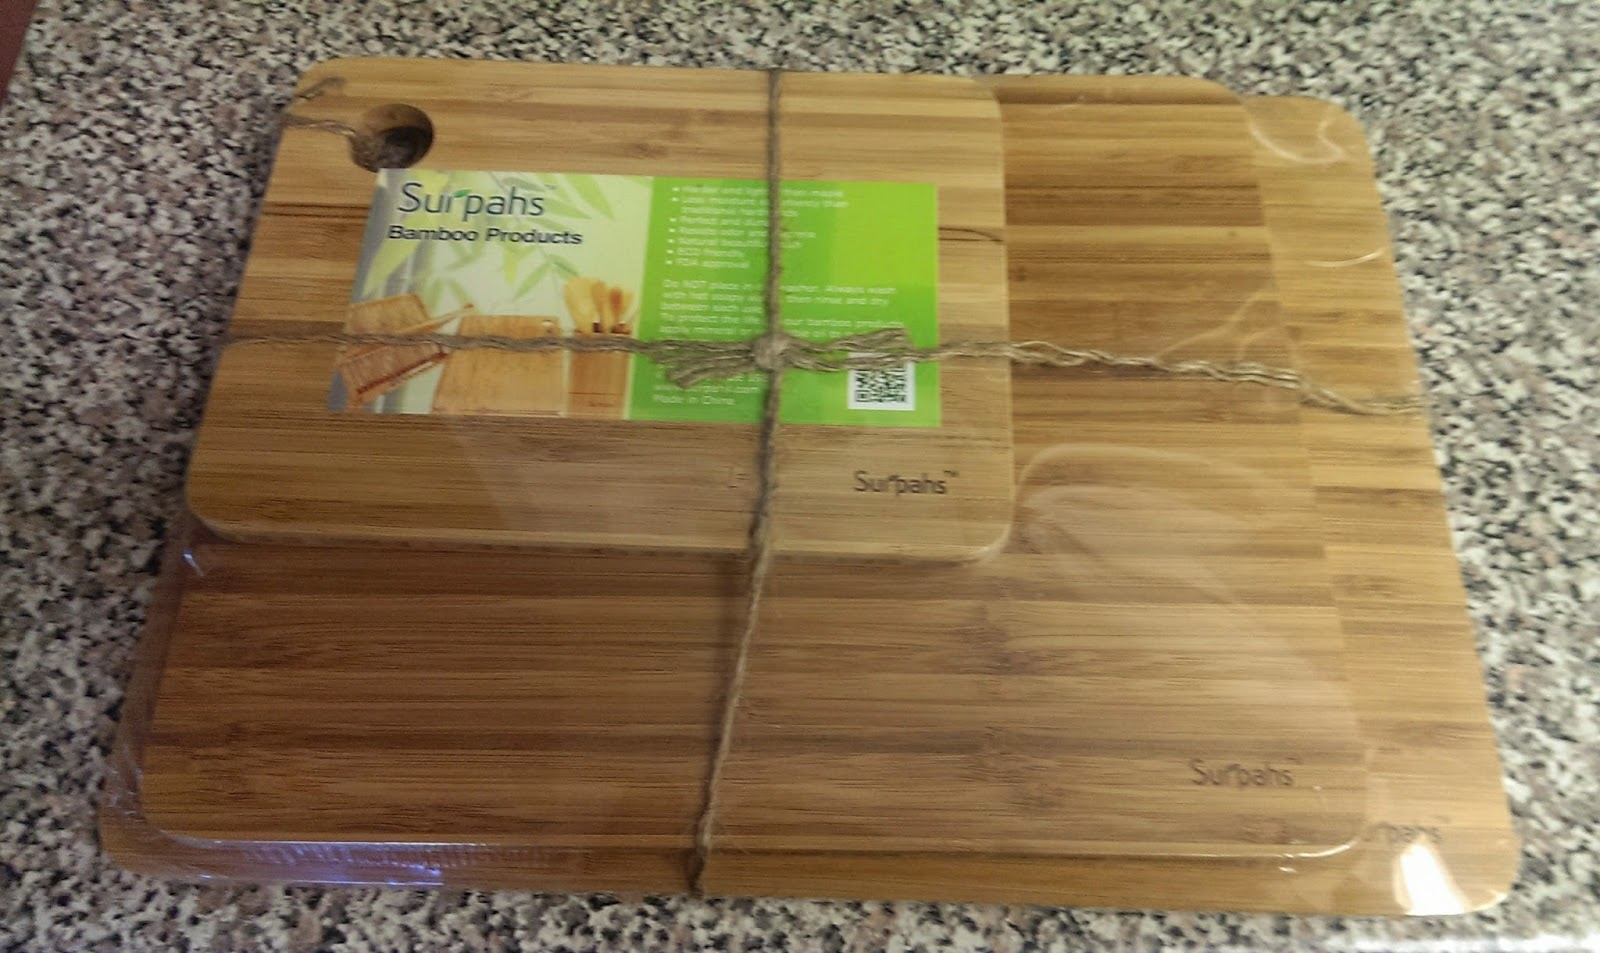 Suprahs+cutting+board Surpahs Kitchen 3-Layer Cross-Laminated Bamboo Cutting Board Set Review